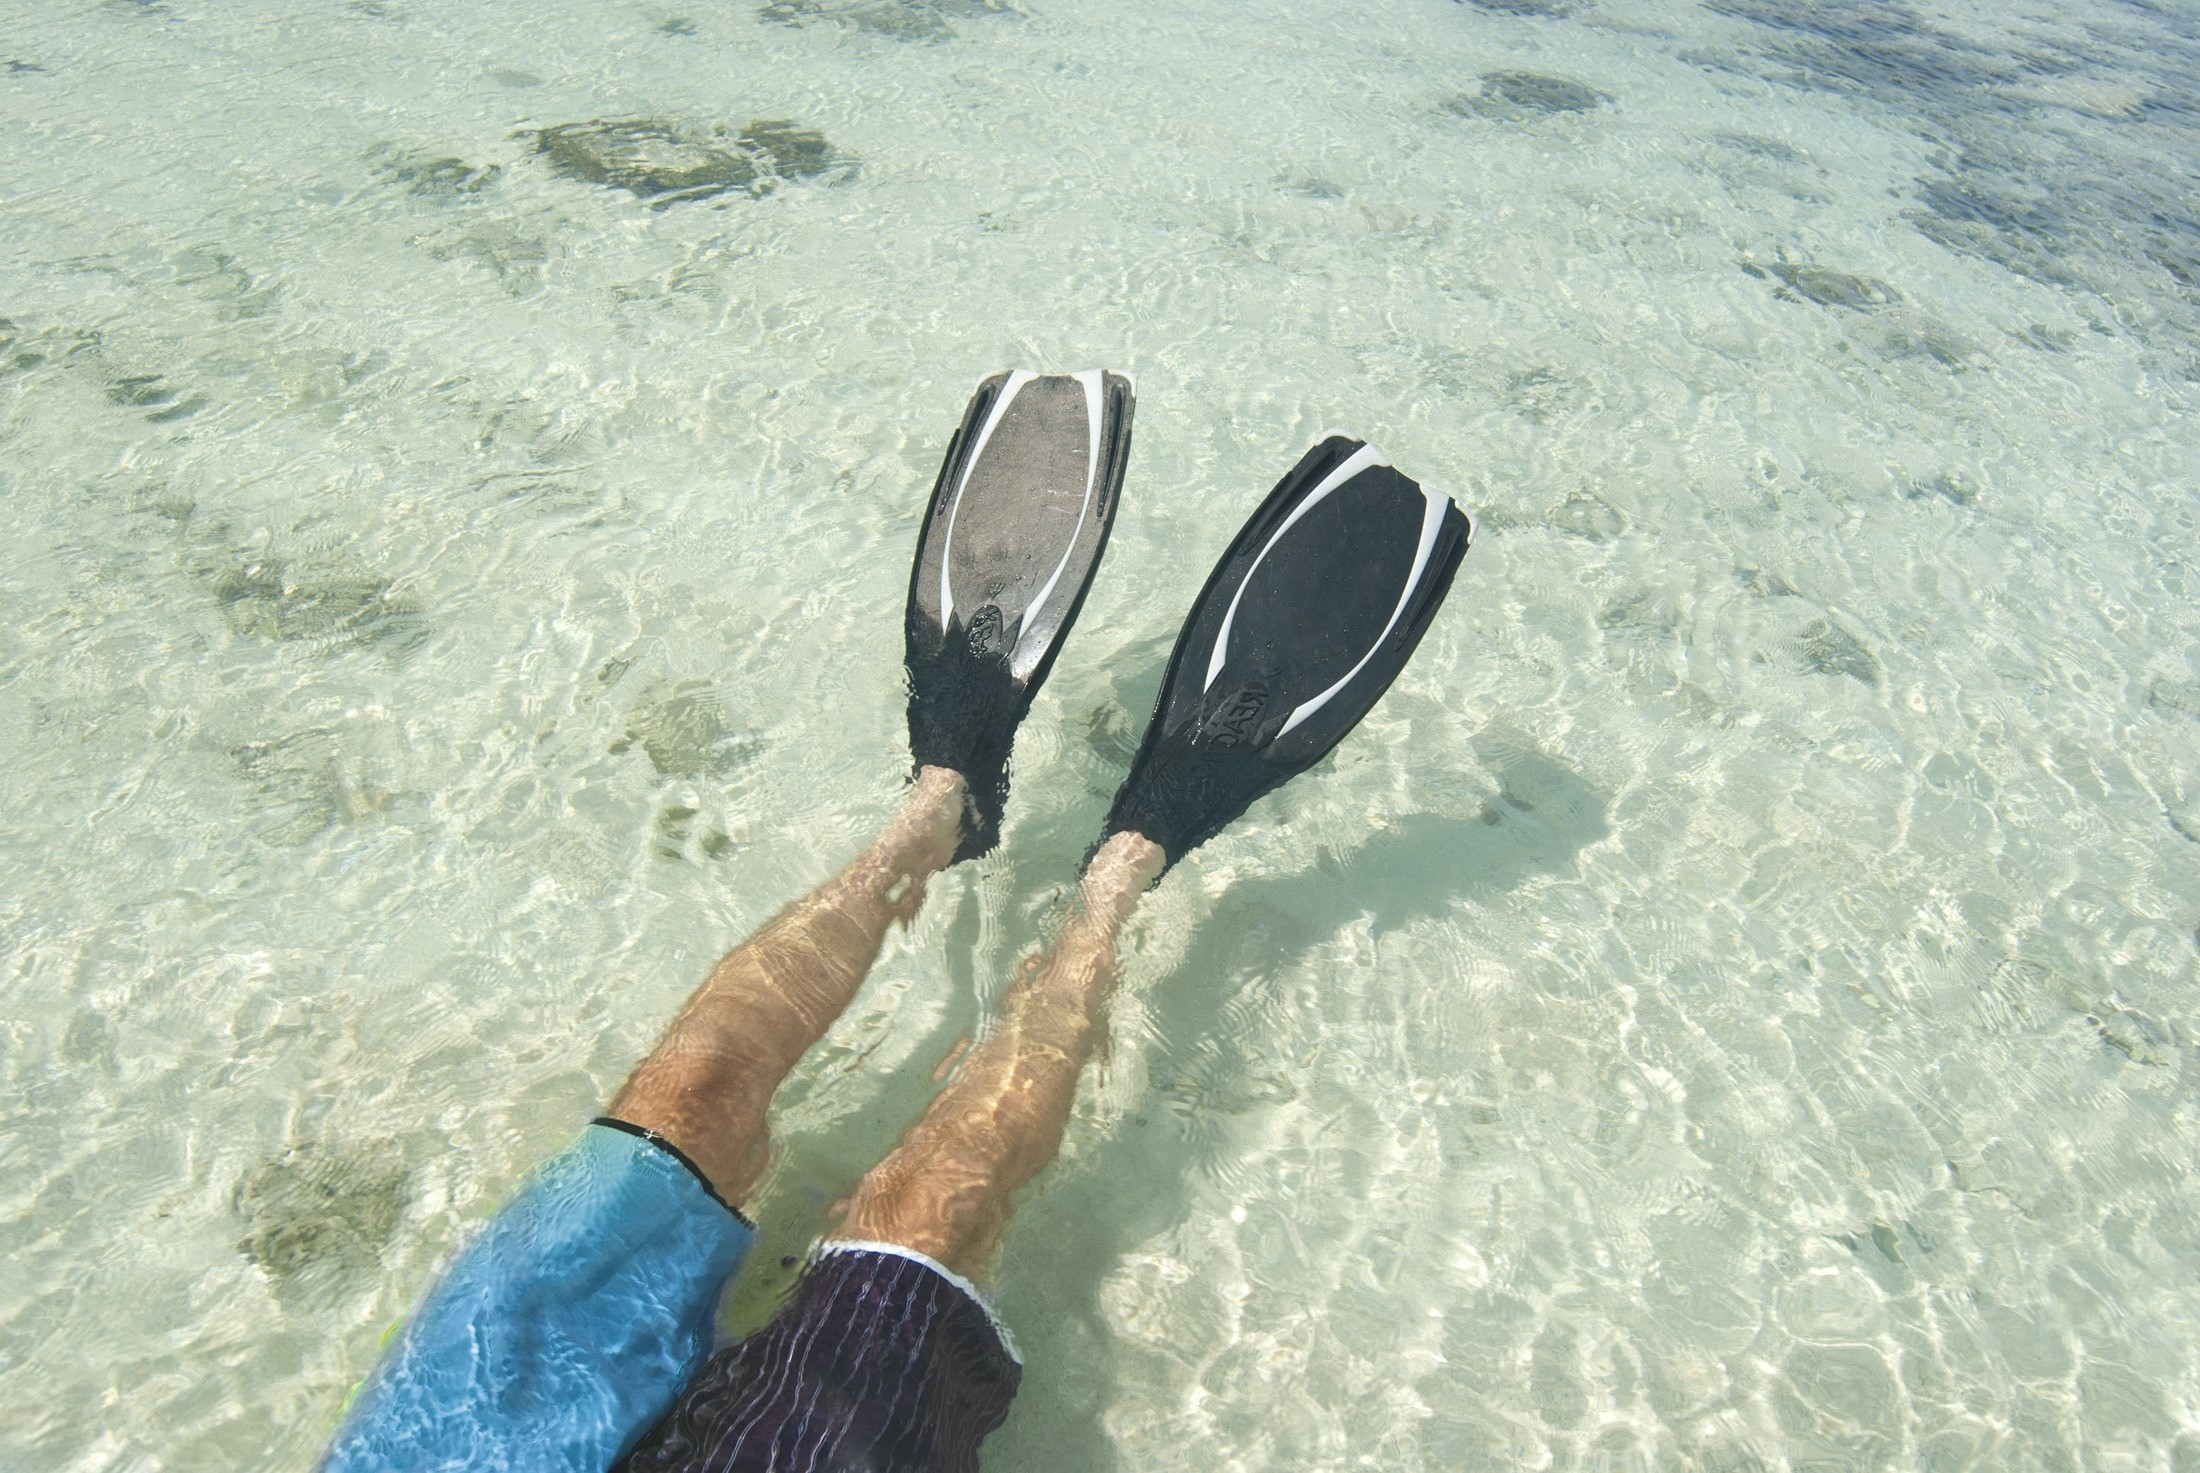 Man lying on his back wearing a pair of fins snorkeling in clear tropical water off a Fijian island